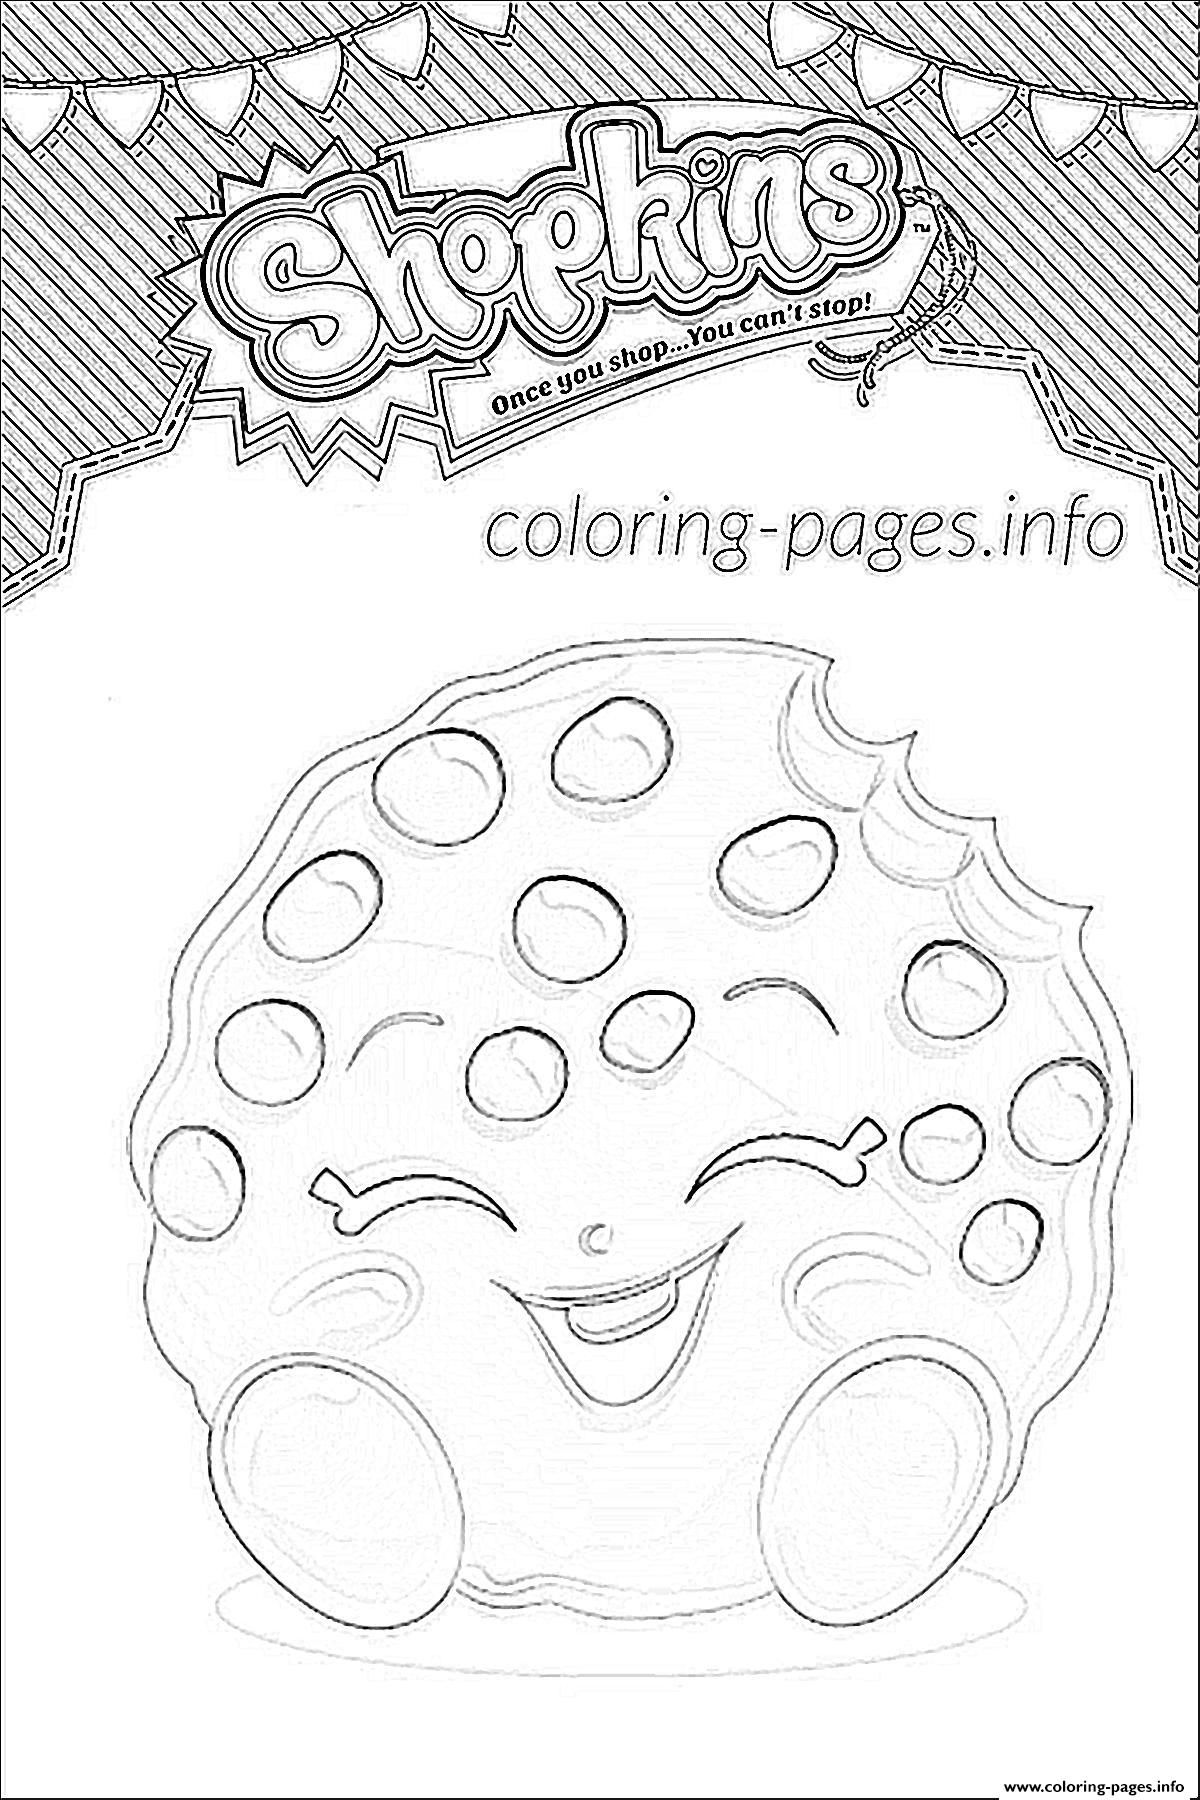 print shopkins shoppies girls coloring pages | favorite places ... - Hopkins Coloring Pages Print